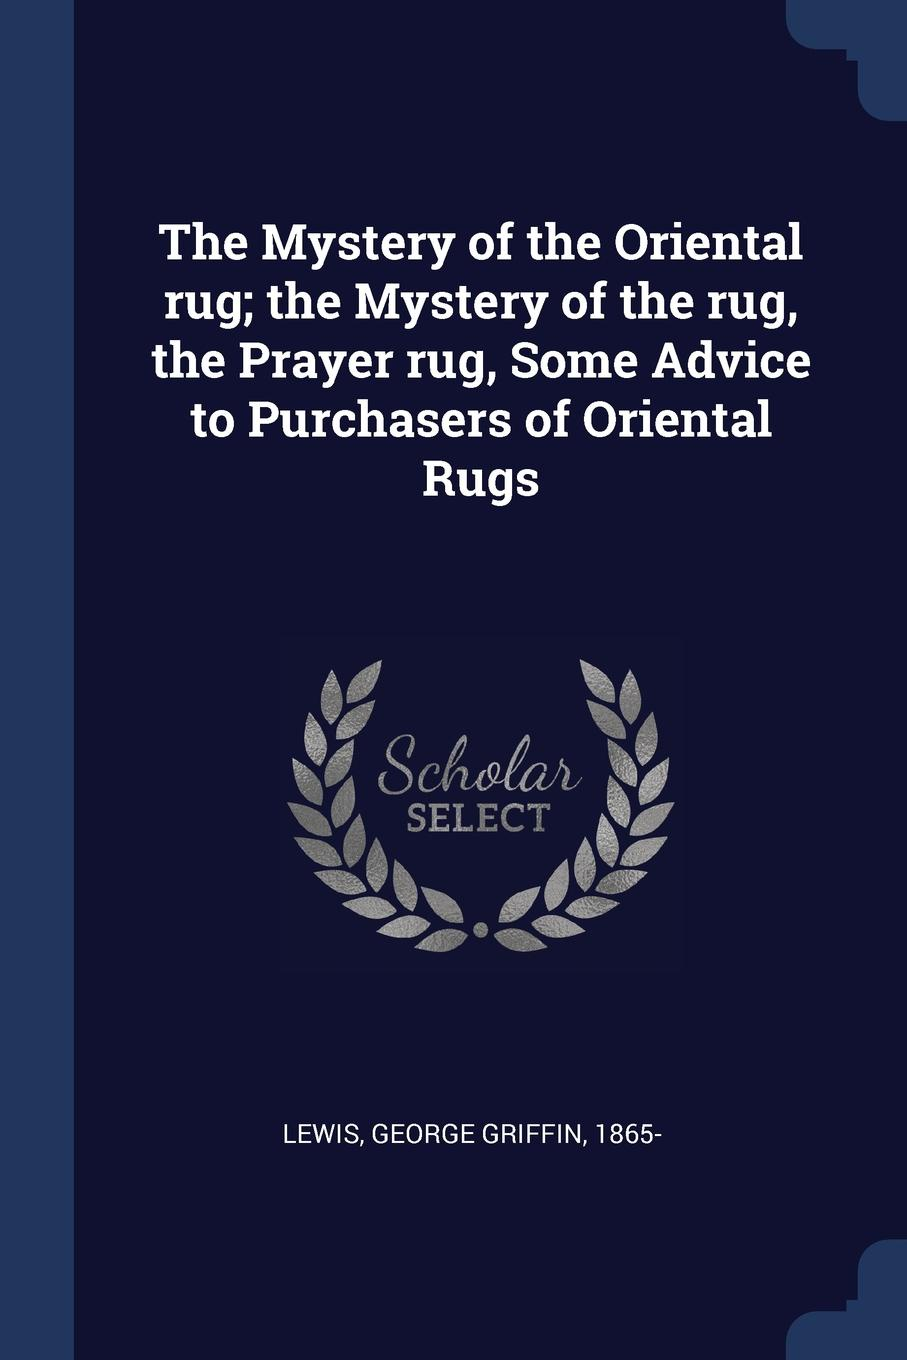 George Griffin Lewis The Mystery of the Oriental rug; the Mystery of the rug, the Prayer rug, Some Advice to Purchasers of Oriental Rugs george griffin lewis the mystery of the oriental rug